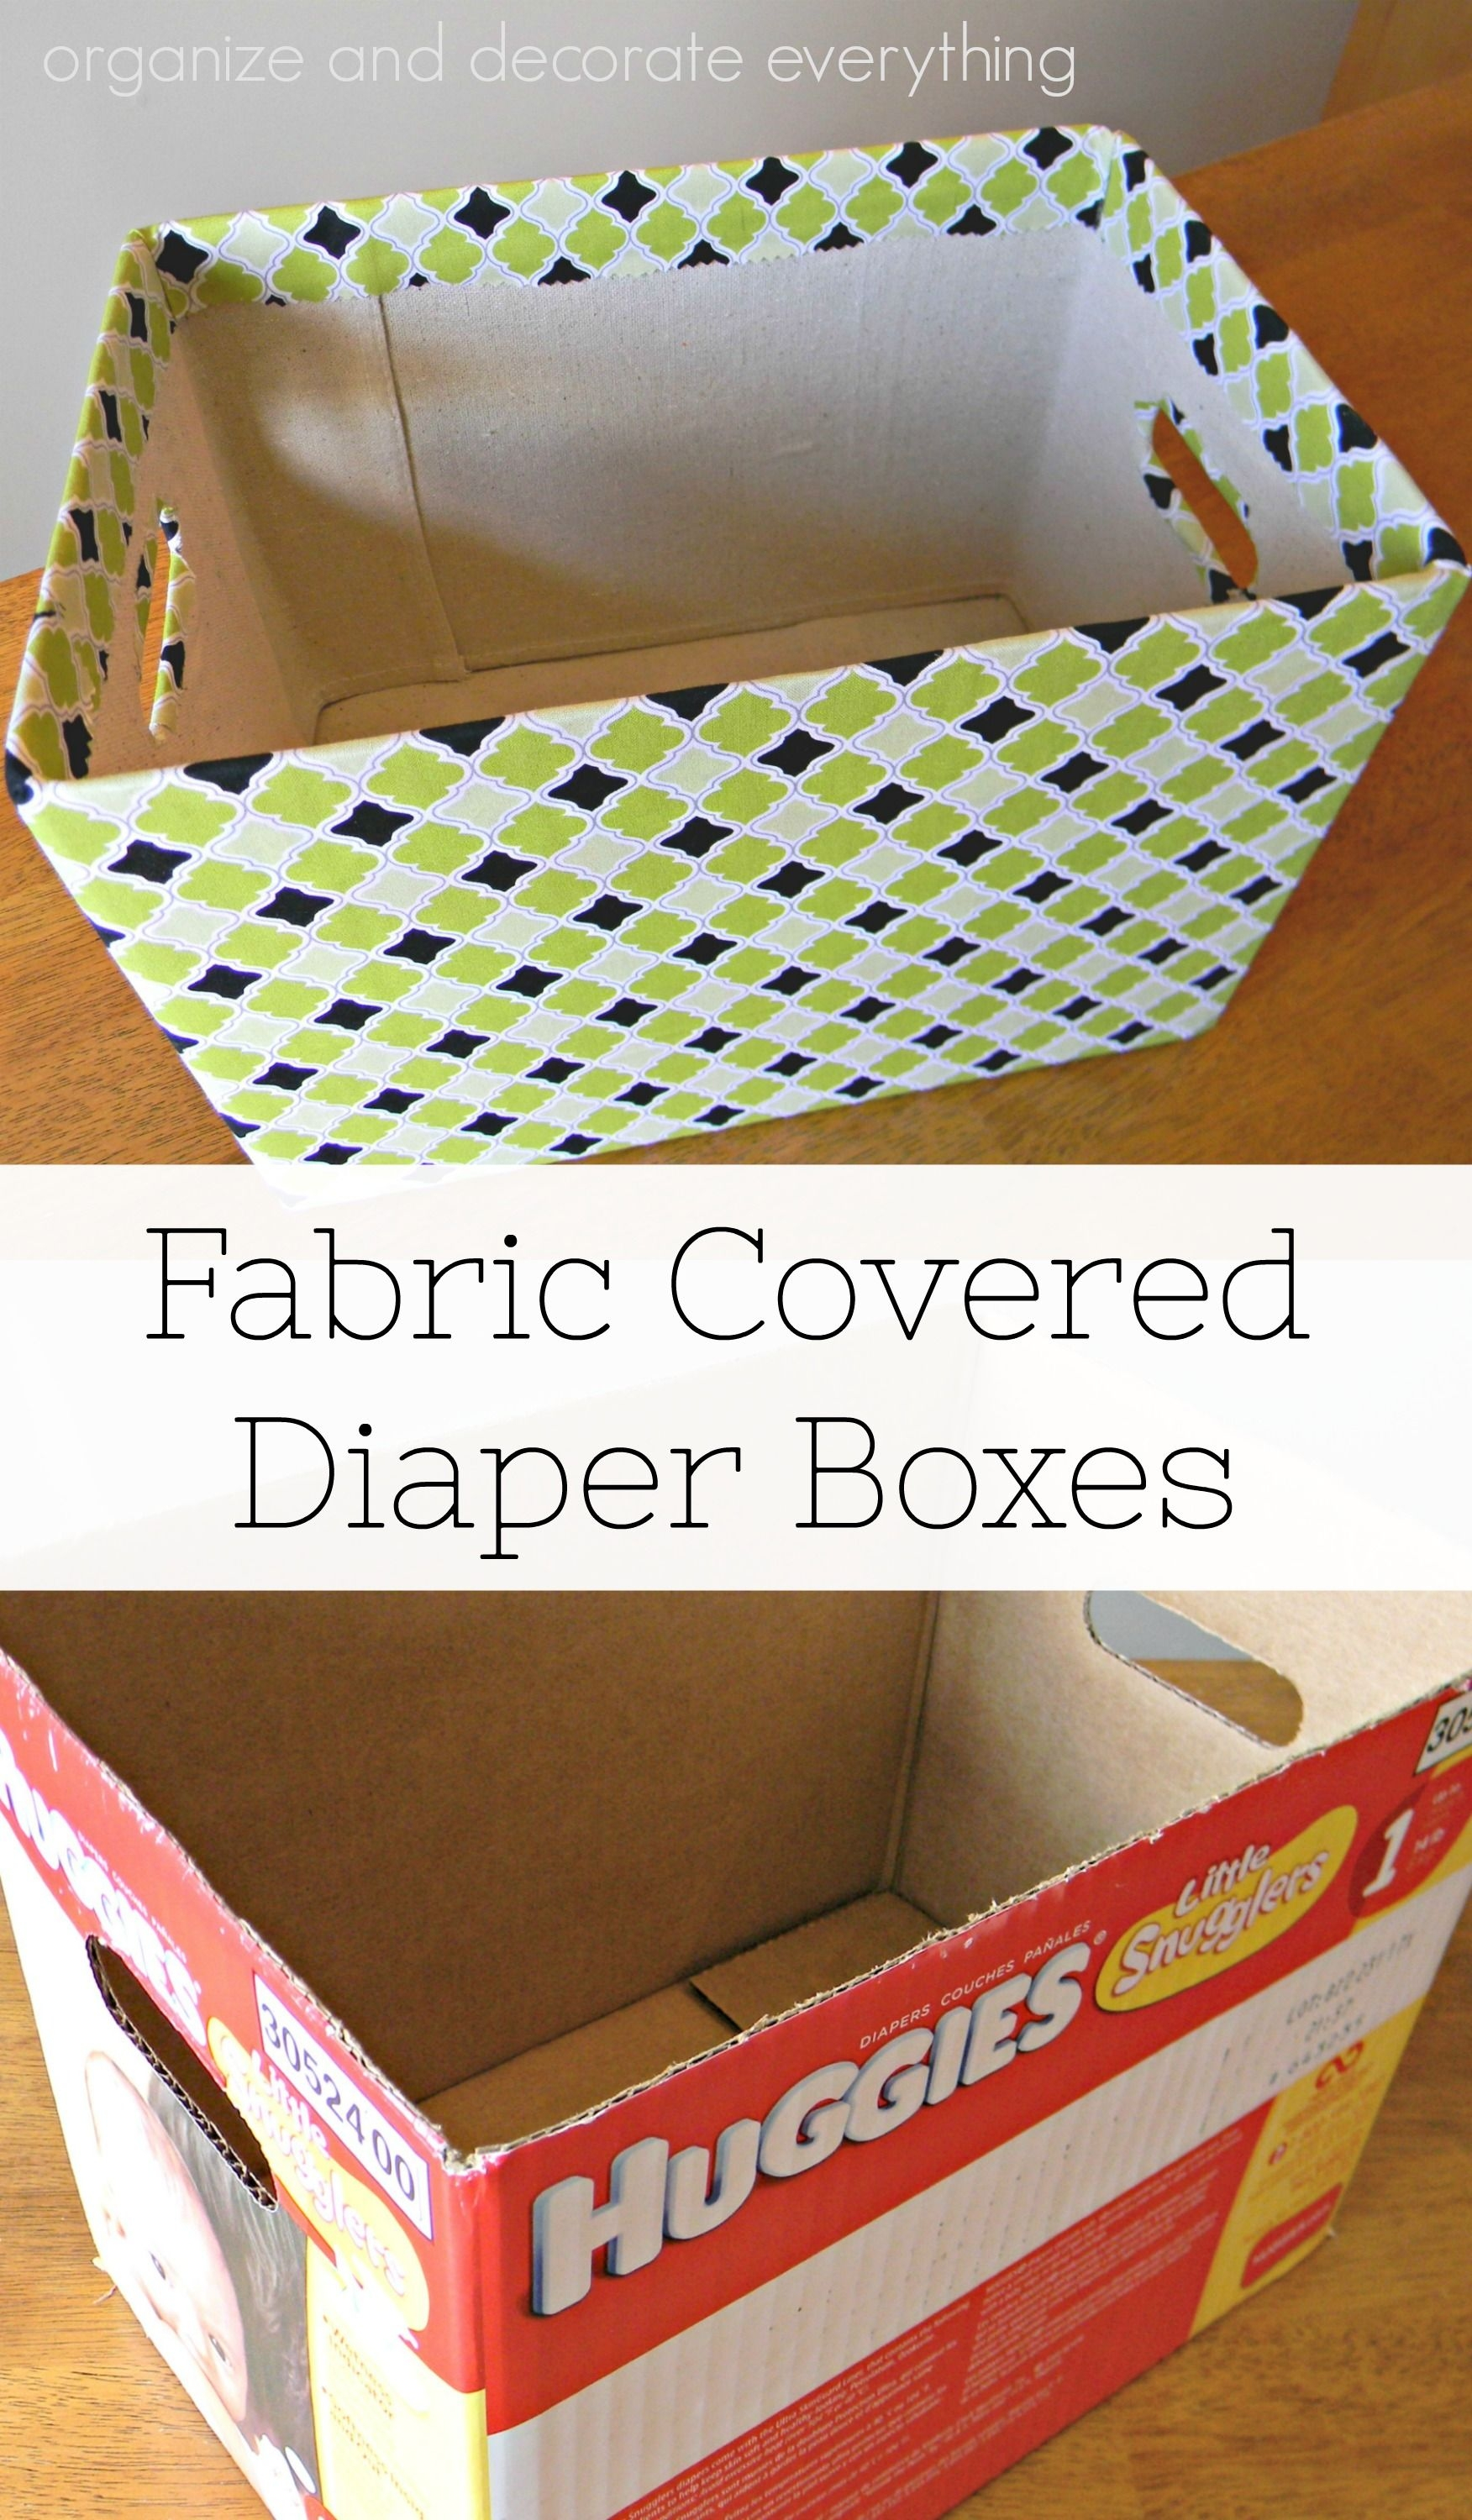 Fabric Covered Diaper Boxes - 31 Days Of Organizing And